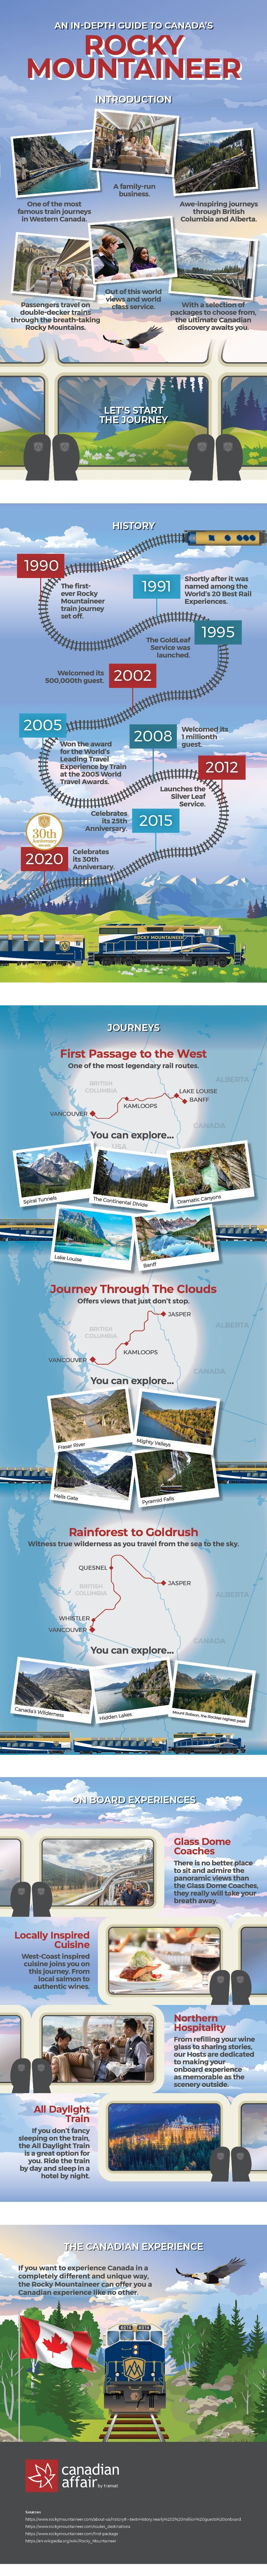 An in-depth guide to Canada's Rocky Mountaineer